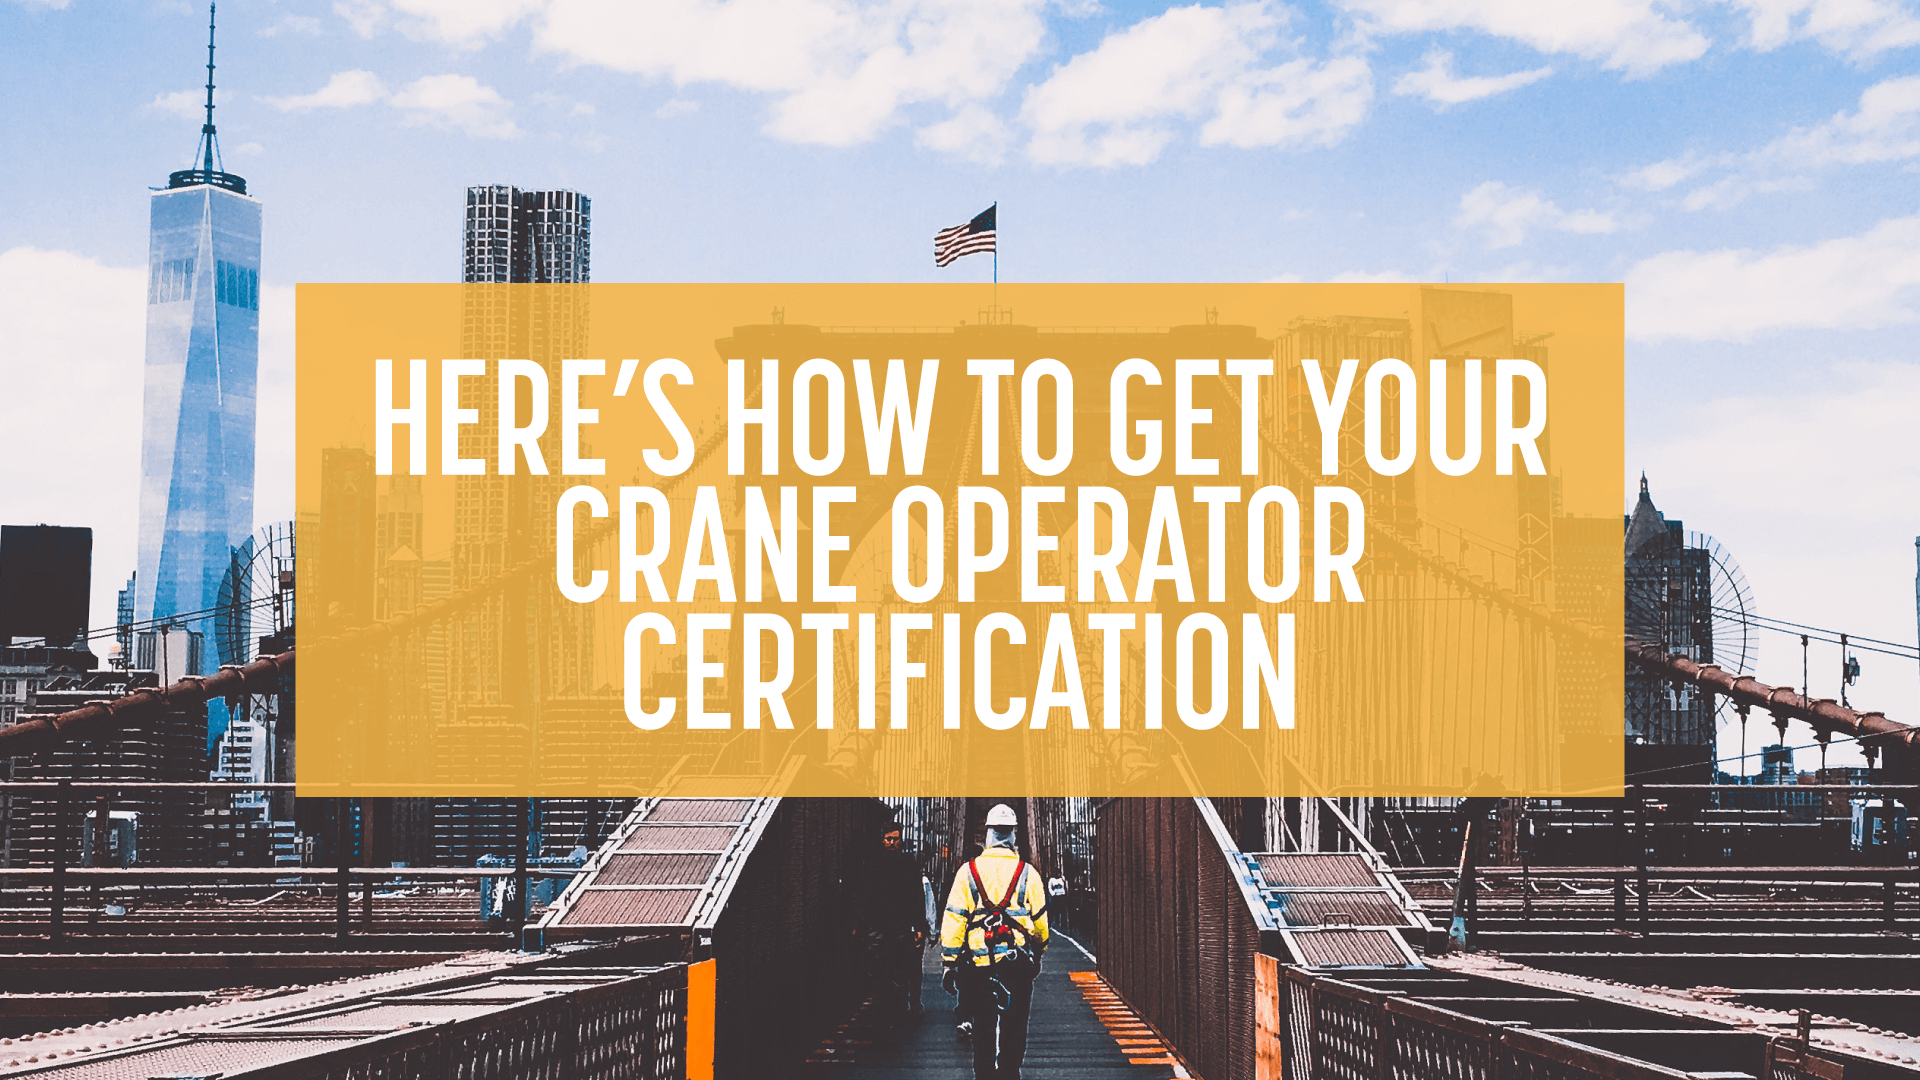 How To Get Crane Operator Certification Train For The Crane